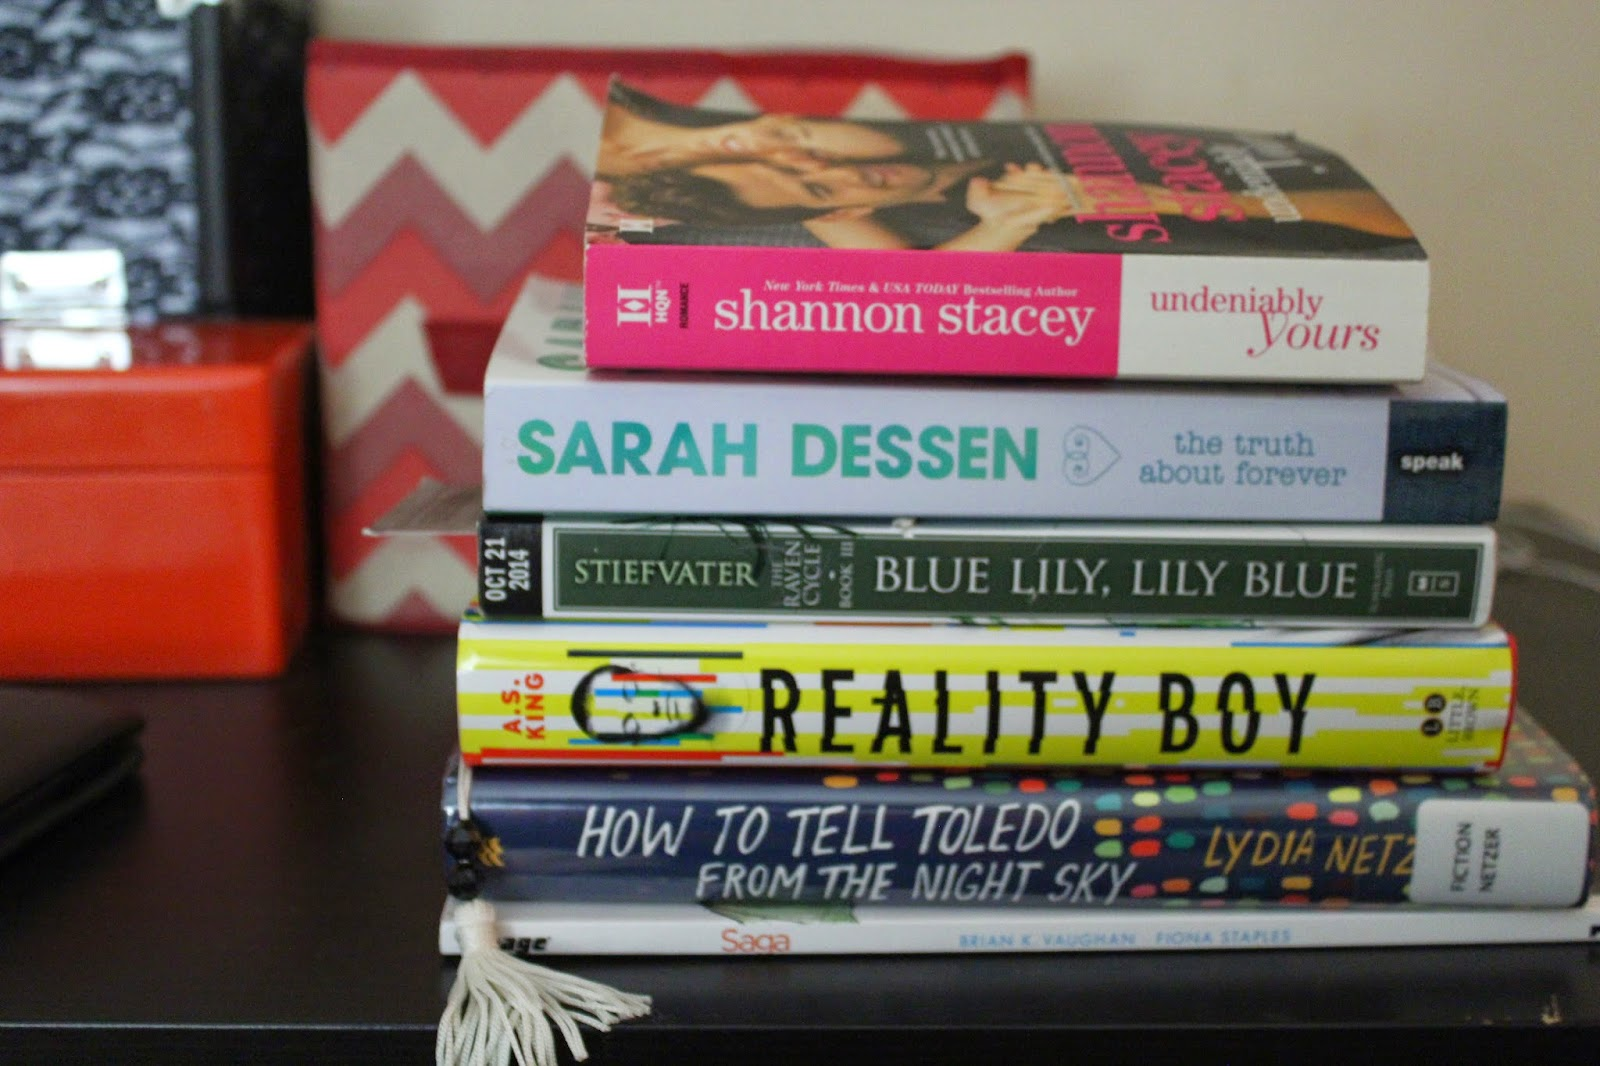 I've Decided I'm Going To Read All The Books I've Started By Haven't  Finished Here's My Stack, Now Off To Buy Some Snacks